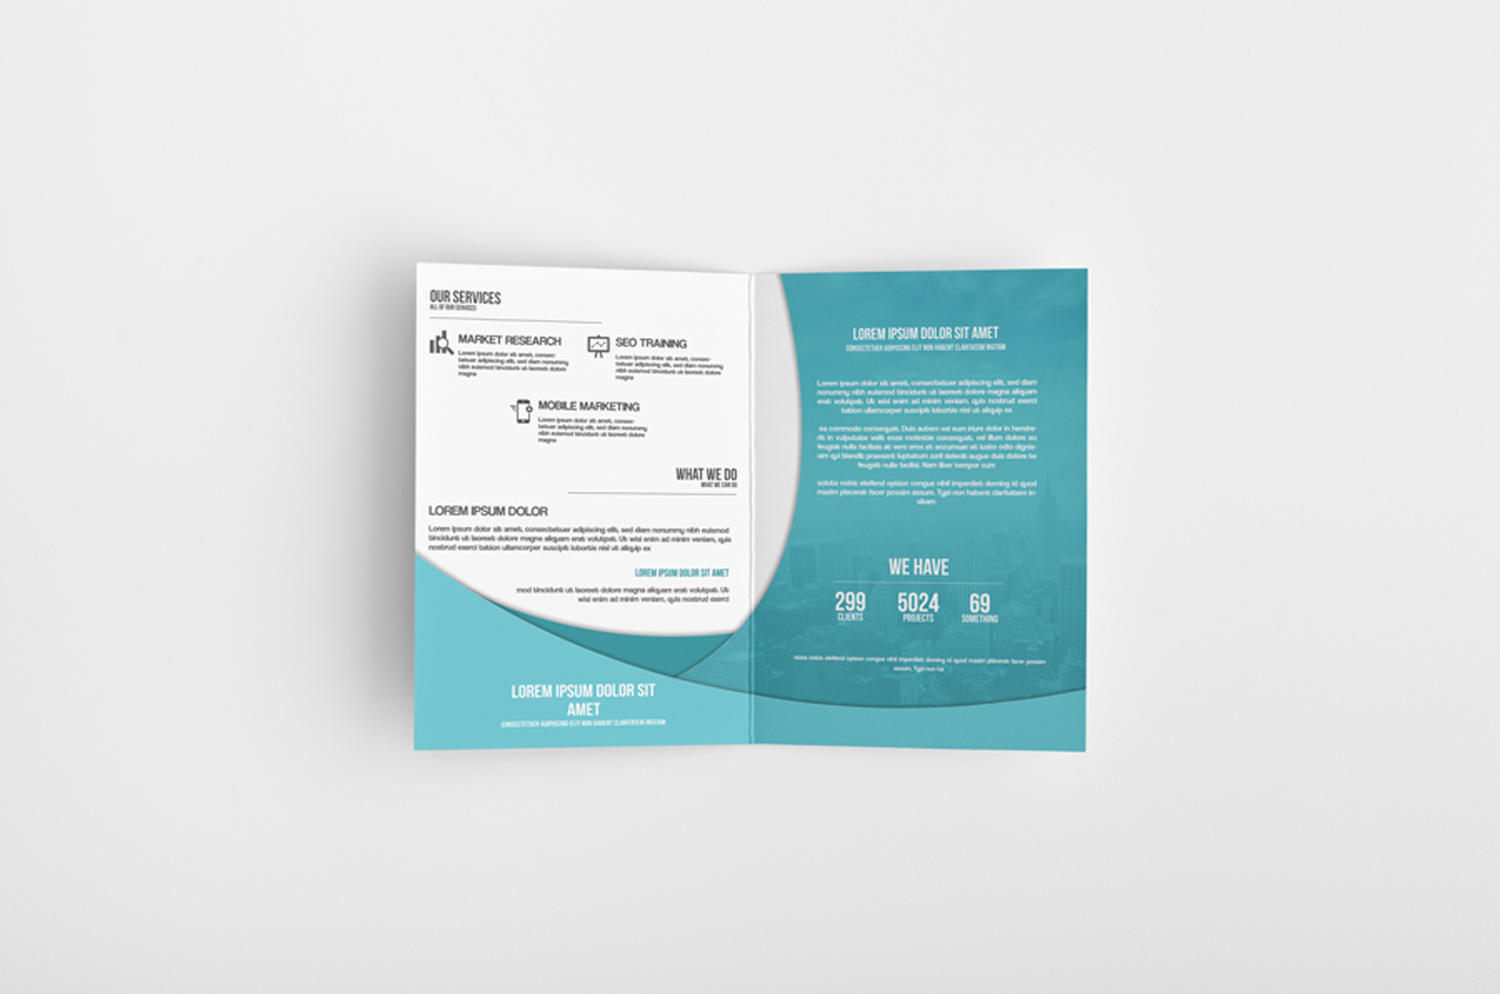 Professional Bifold / 4 Page Brochure Design Service by CreativeShop7 - 89323